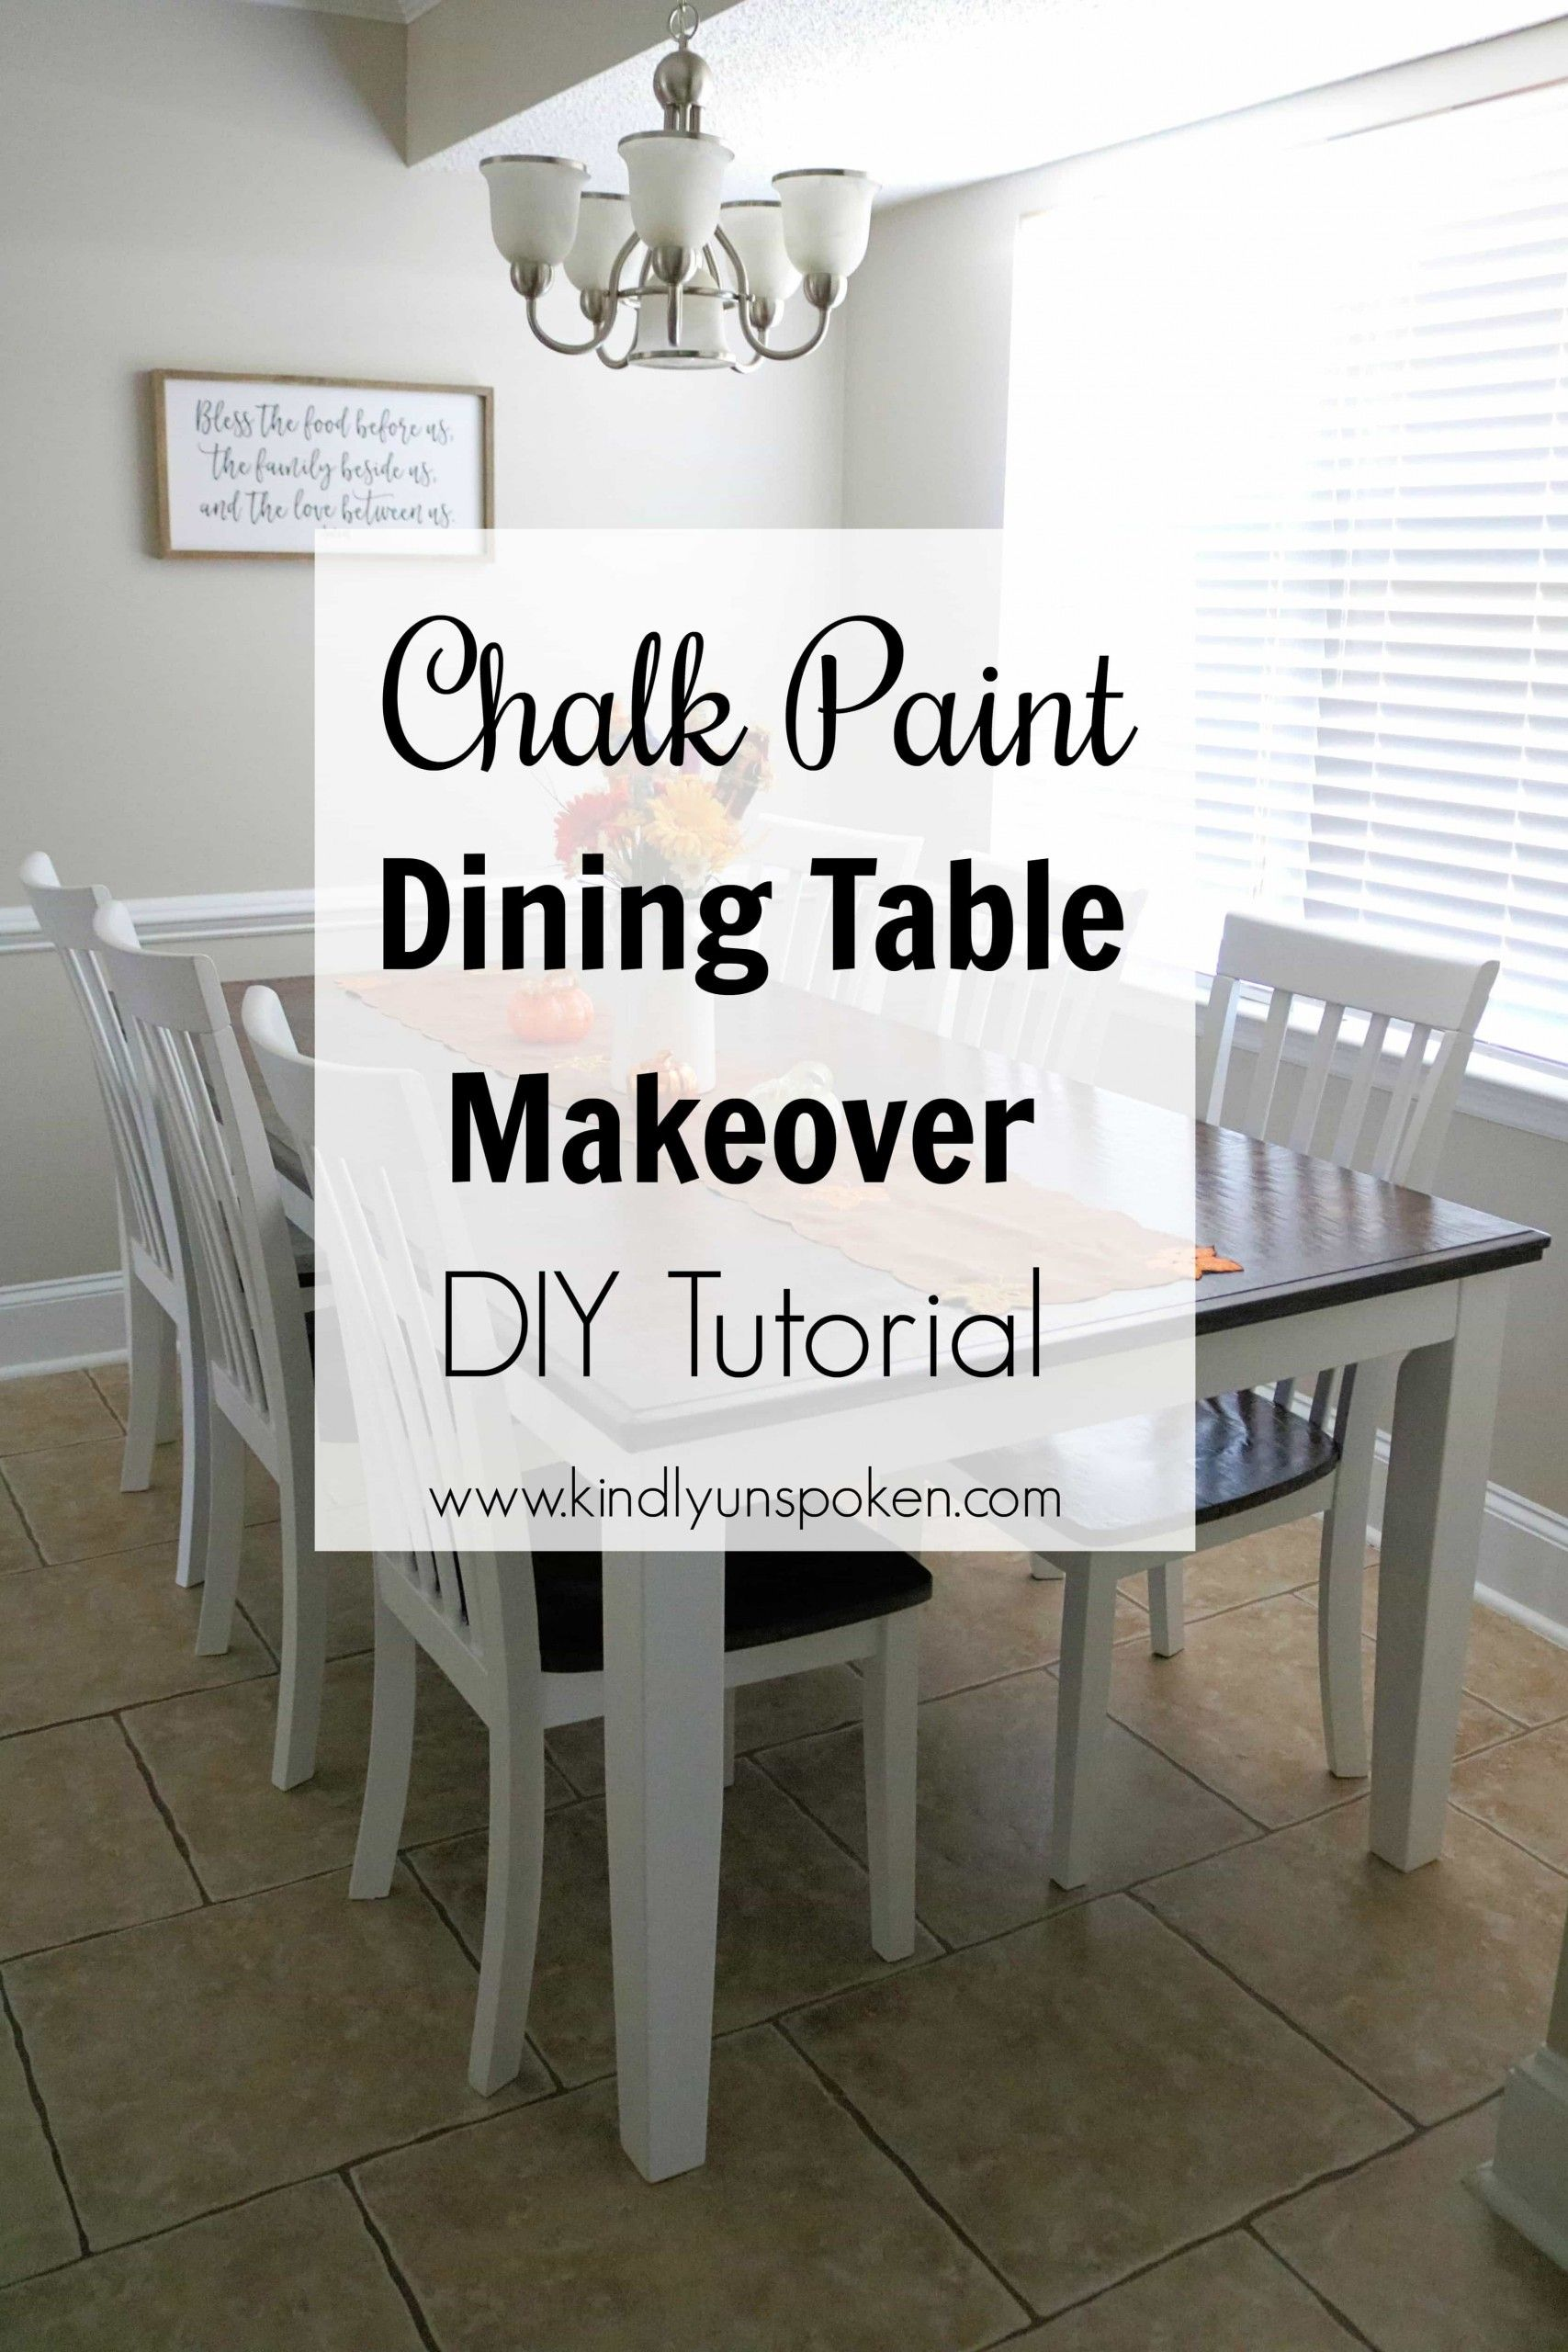 Gorgeous Chalk Paint Dining Table Makeover (DIY)